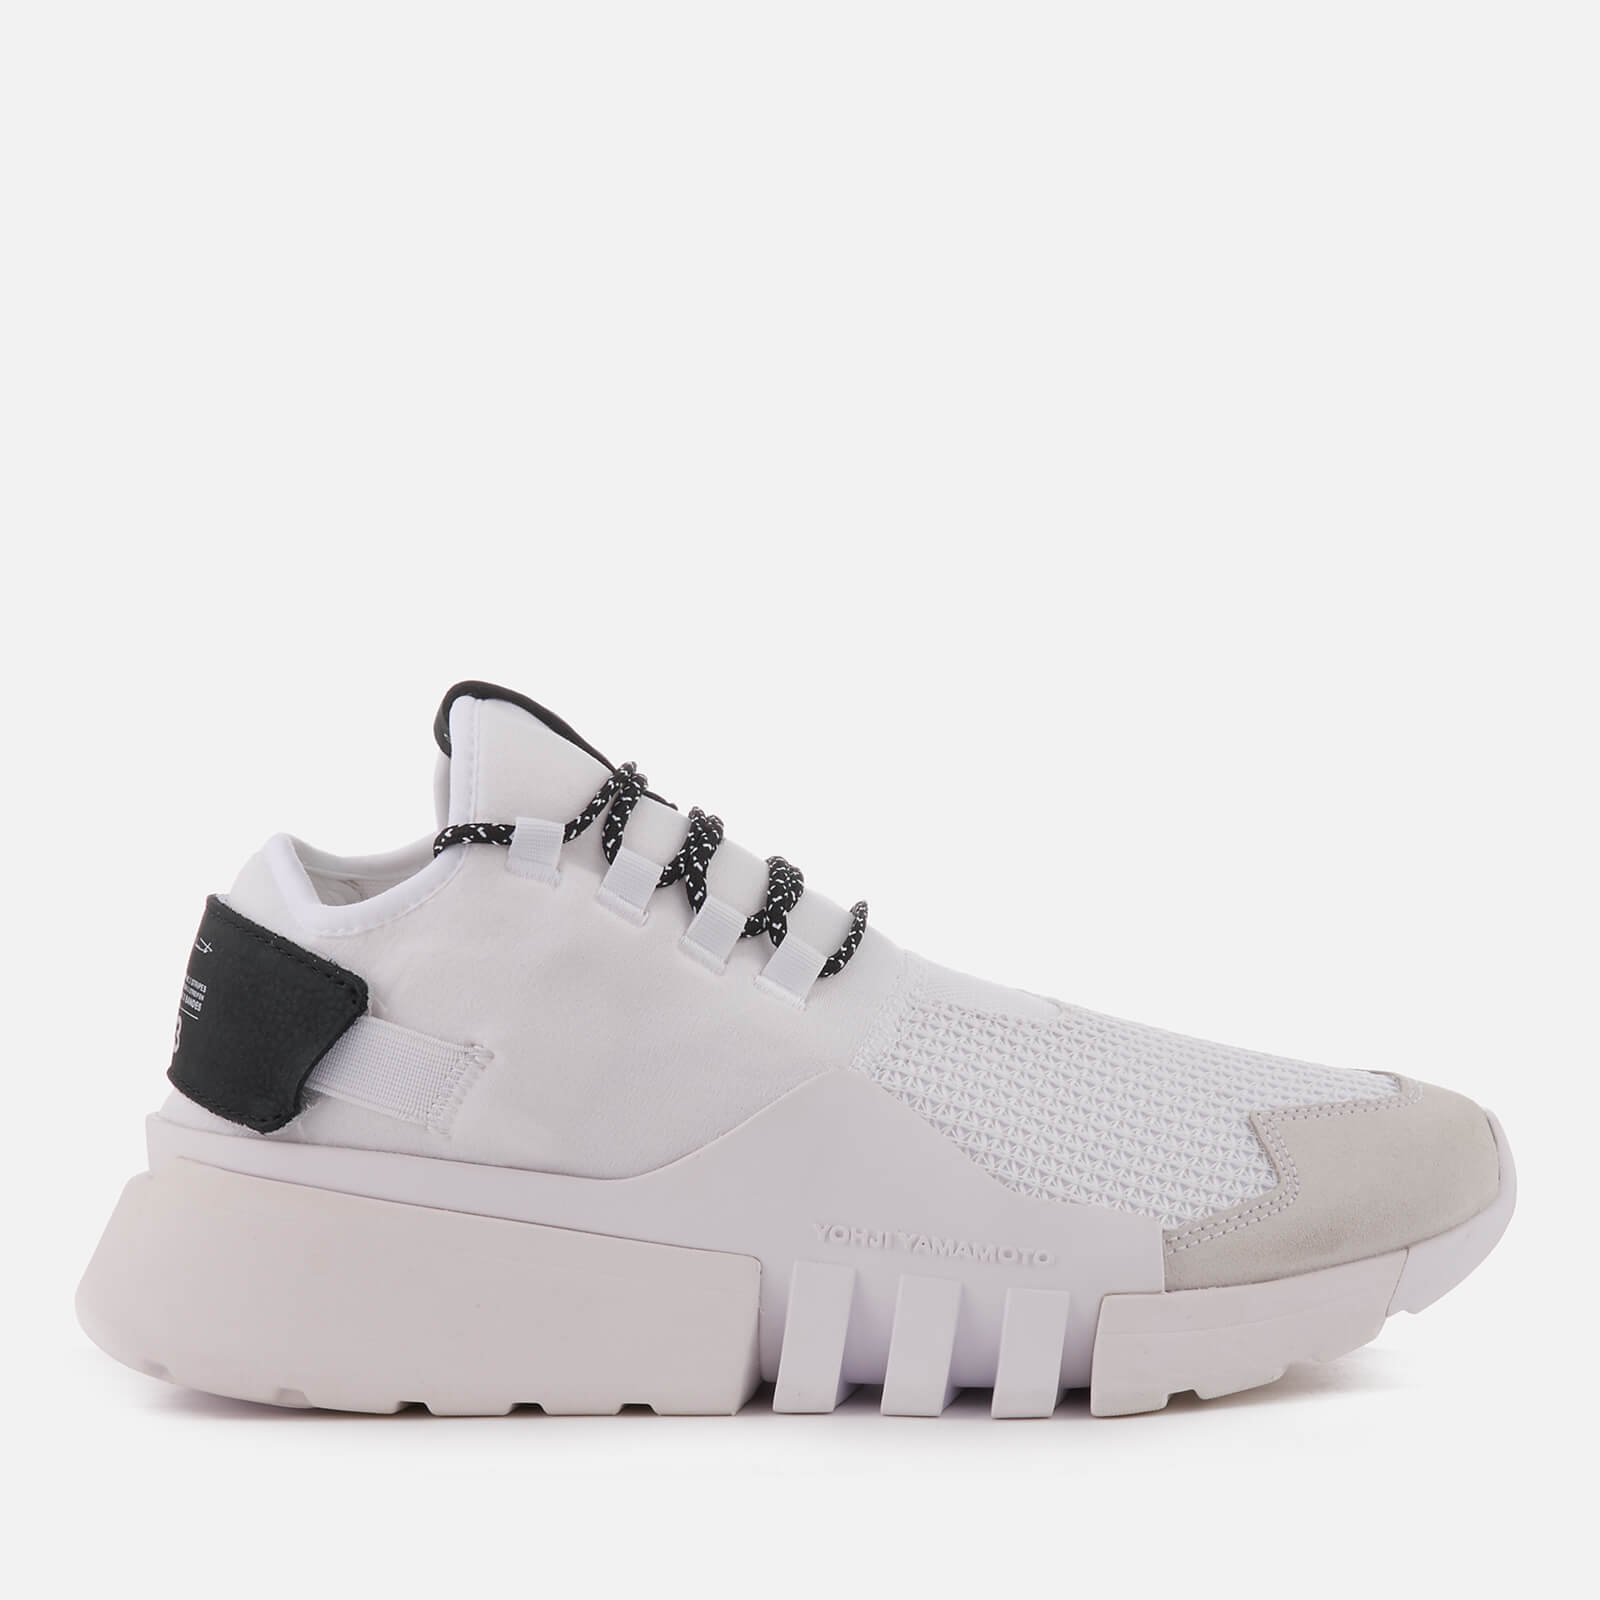 066296ef5 Y-3 Men s Ayero Trainers - White White White - Free UK Delivery over £50